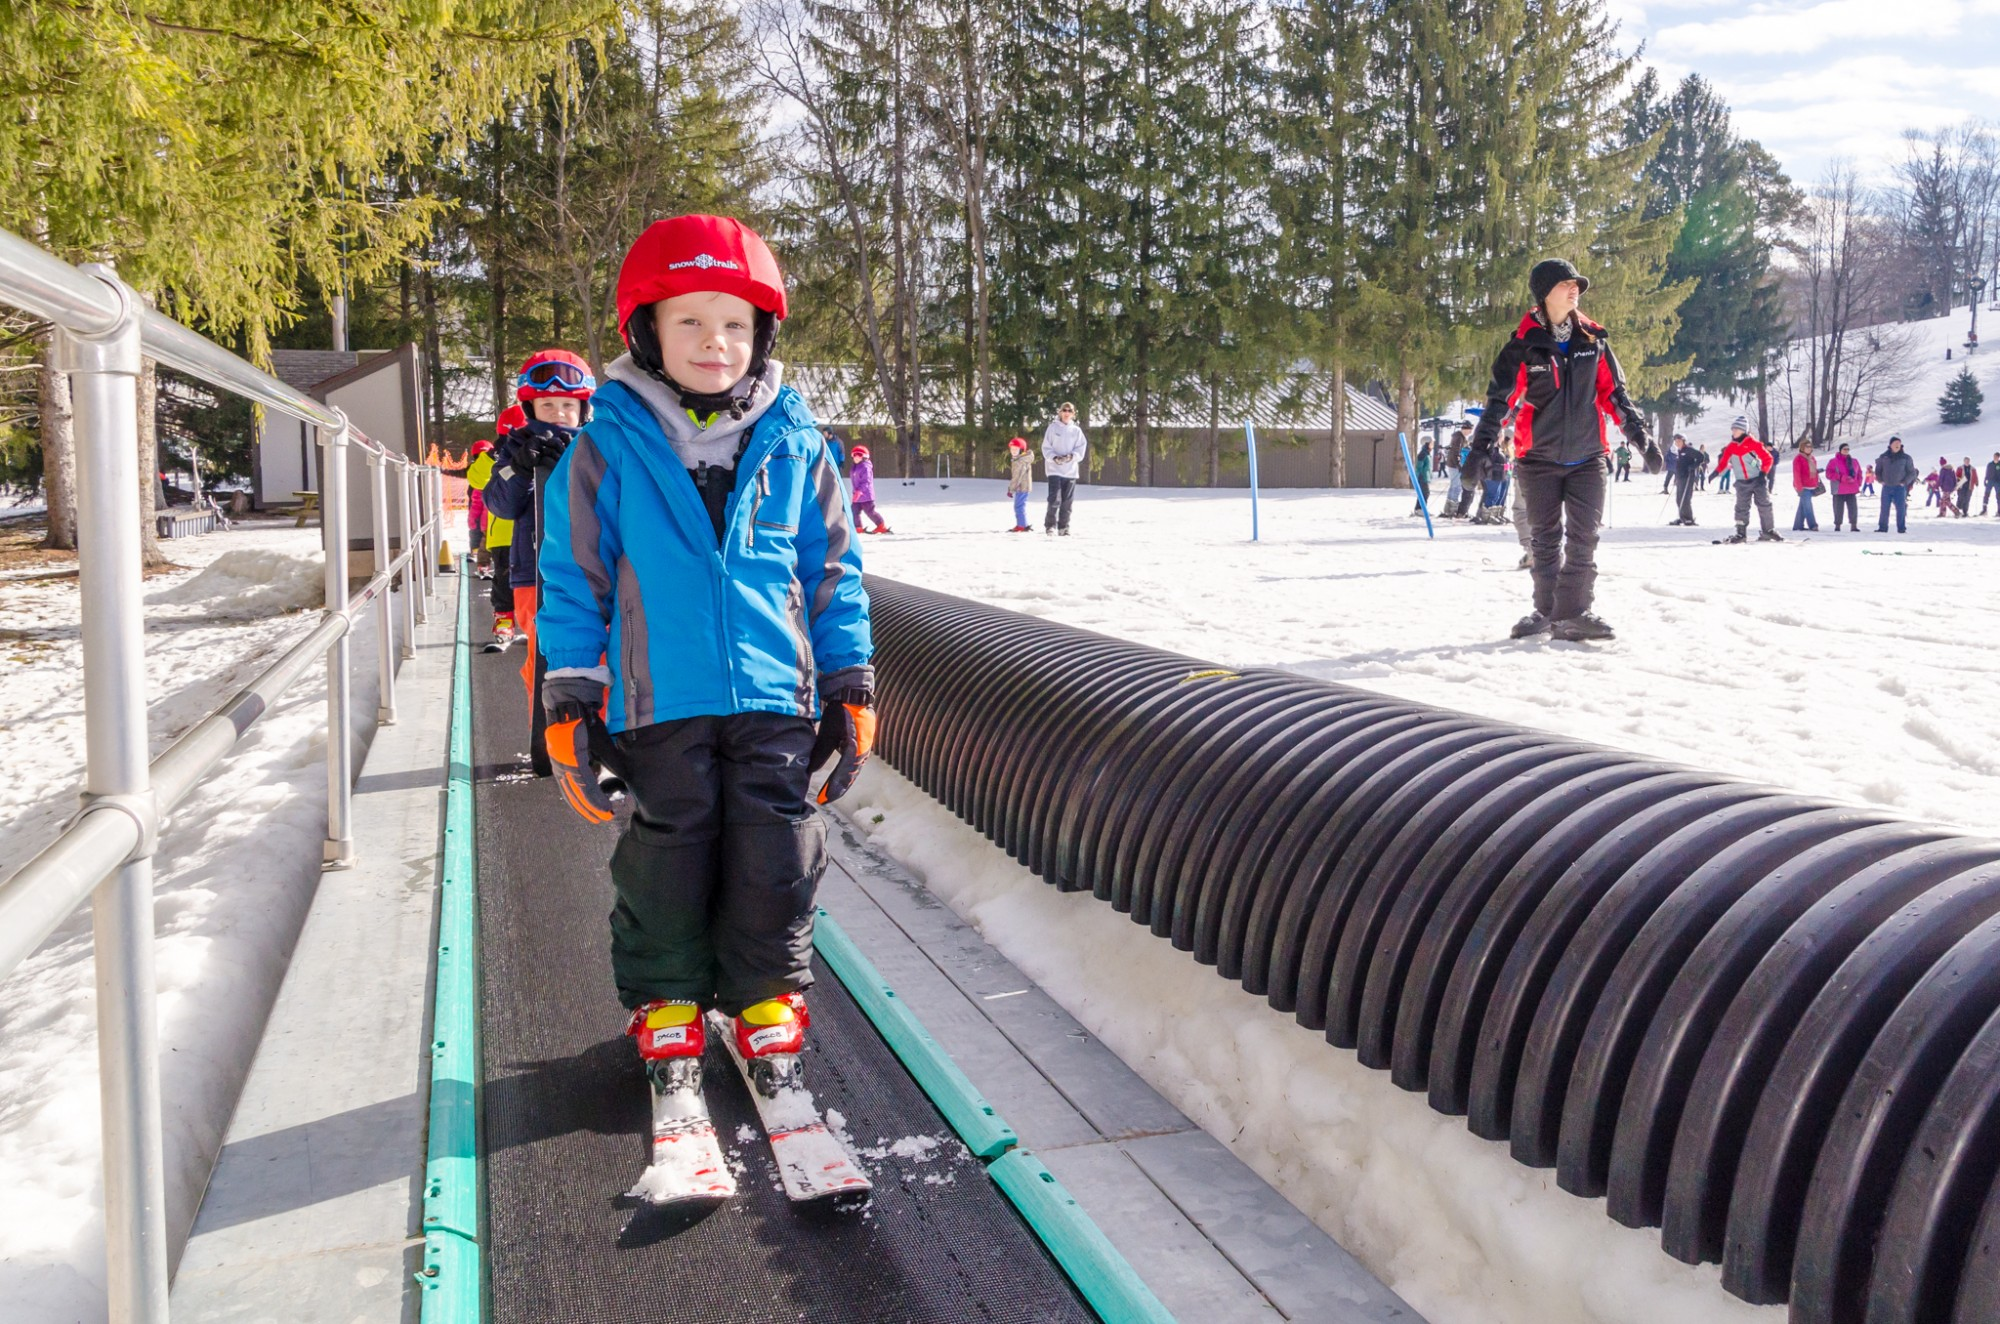 Children's Programs at Snow Trails include on-snow instruction in the most user friendly Beginners Area